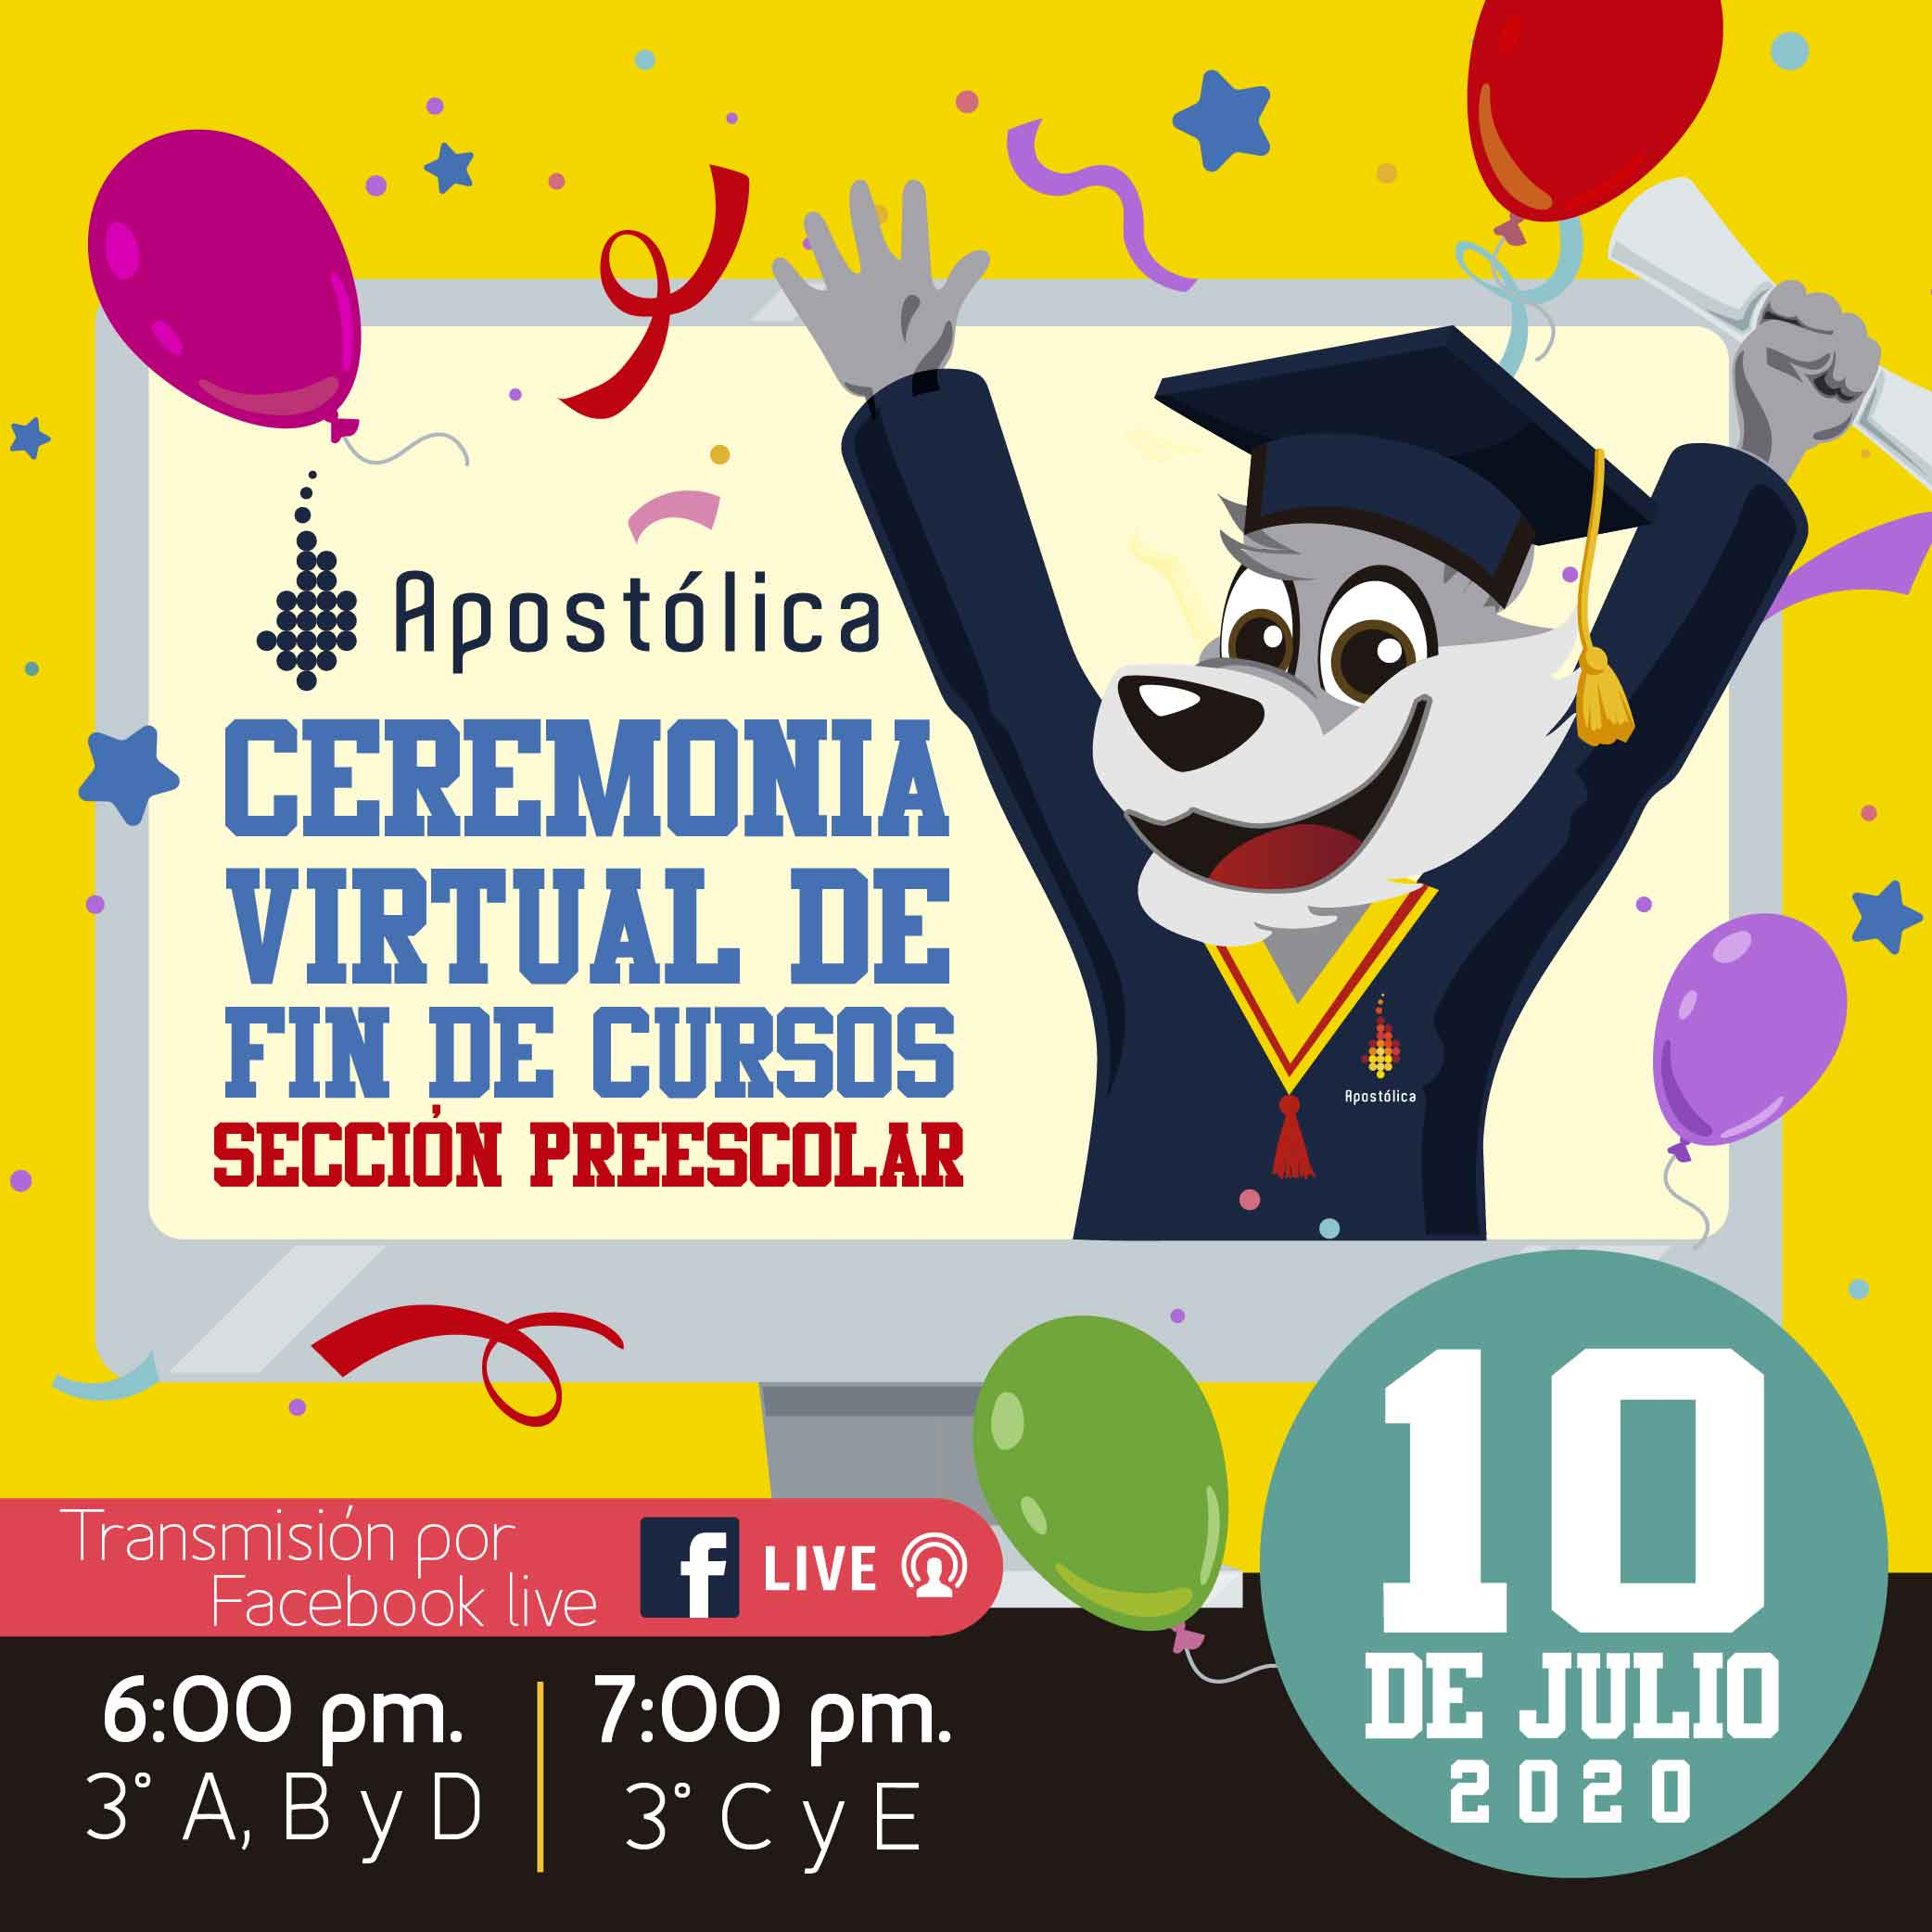 Ceremonia virtual de fin de cursos, Preescolar